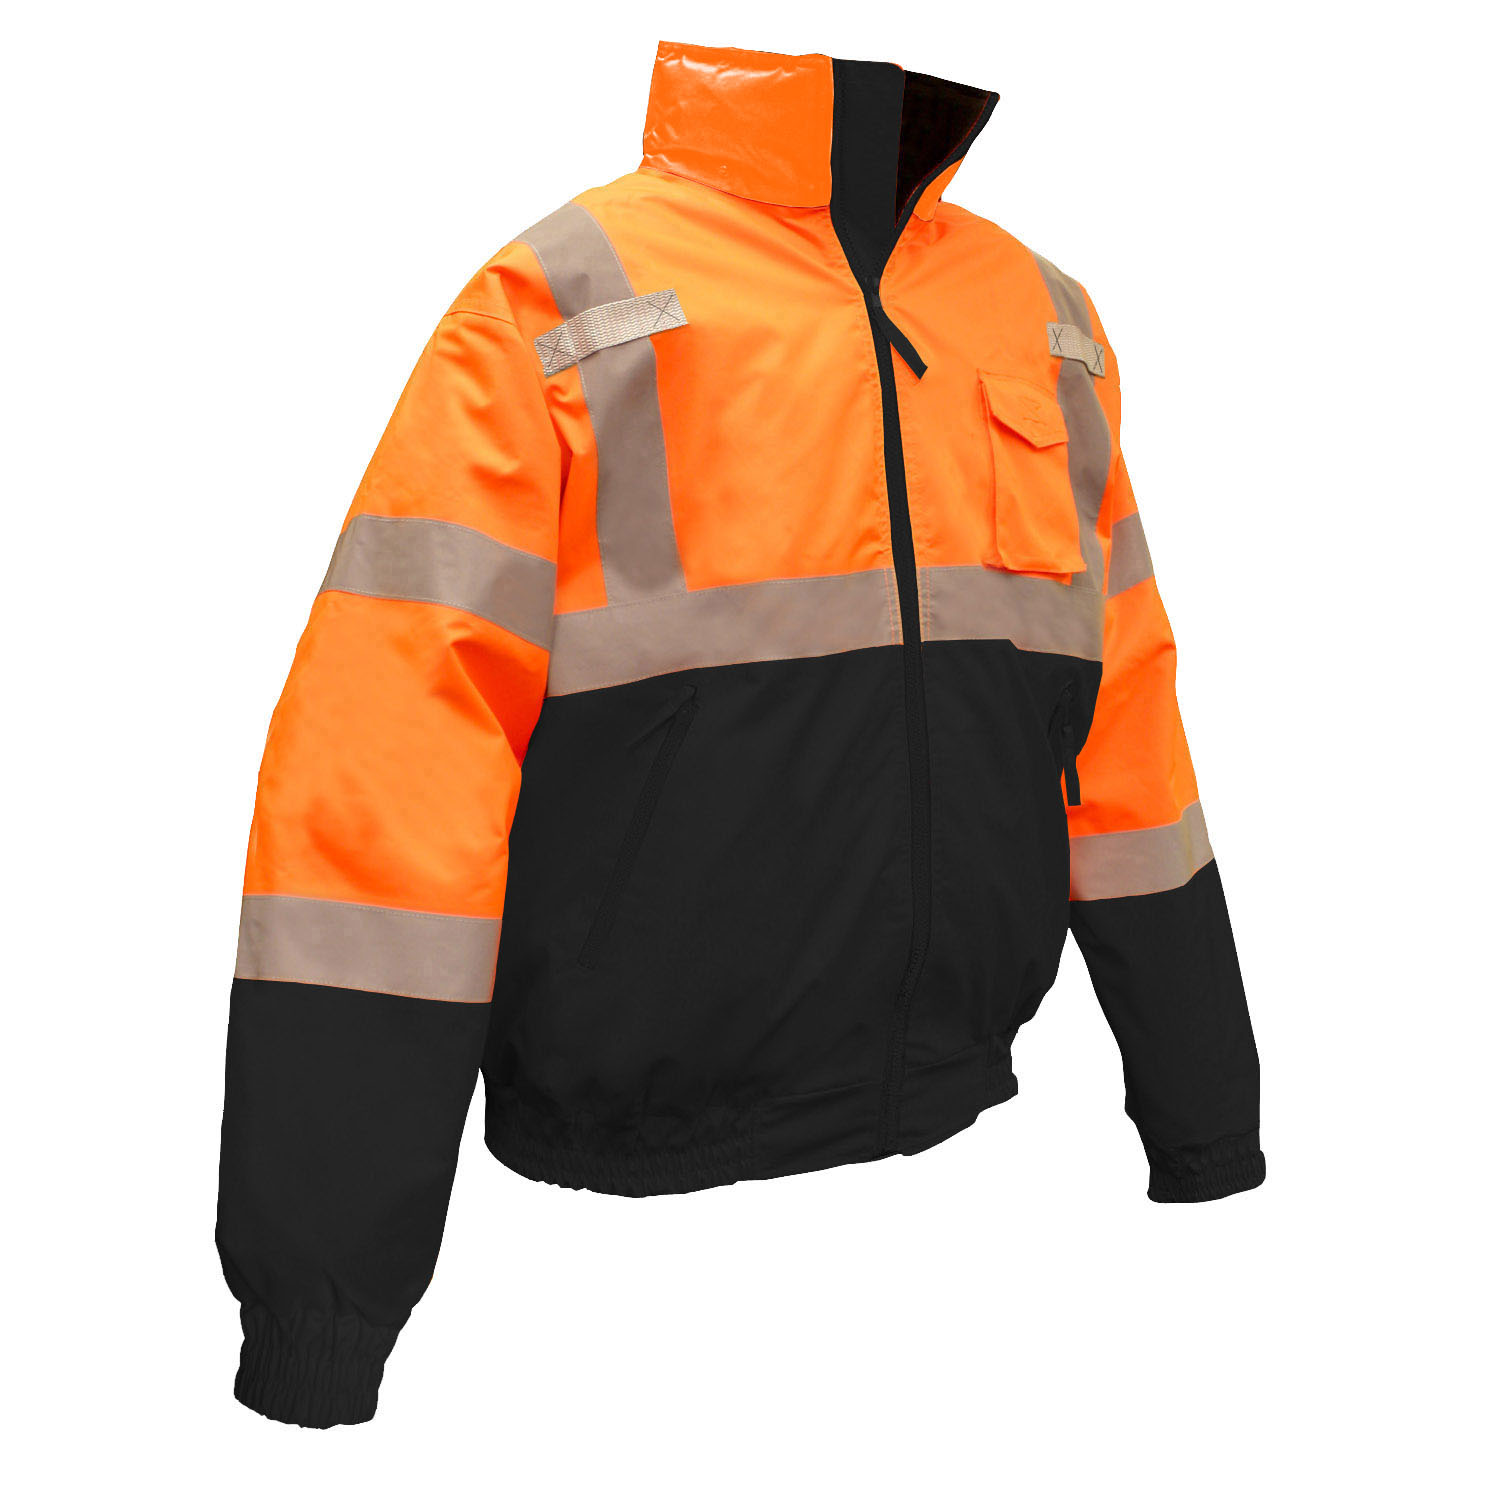 Radwear Sj110b Class 3 Two In One Hi Viz Orange Safety